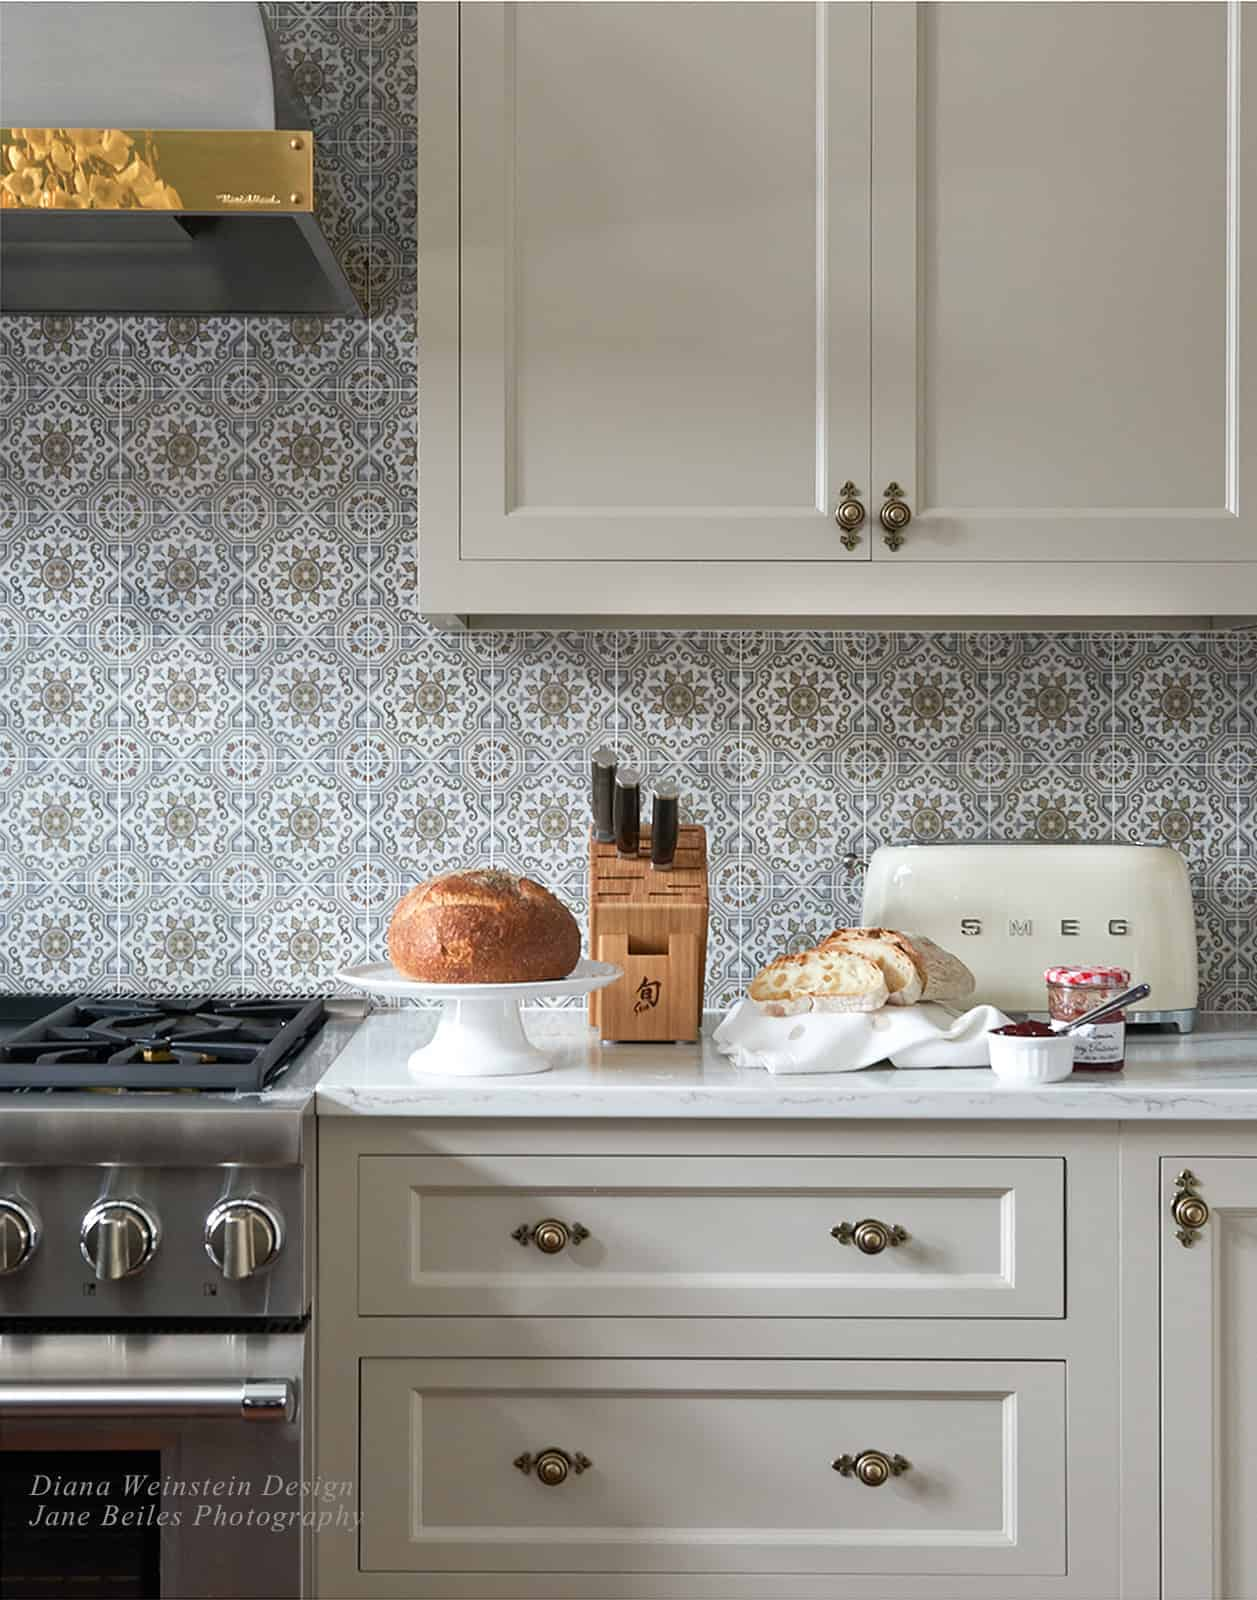 Dianne Weinstein Sanza Sesame Kitchen Backsplash